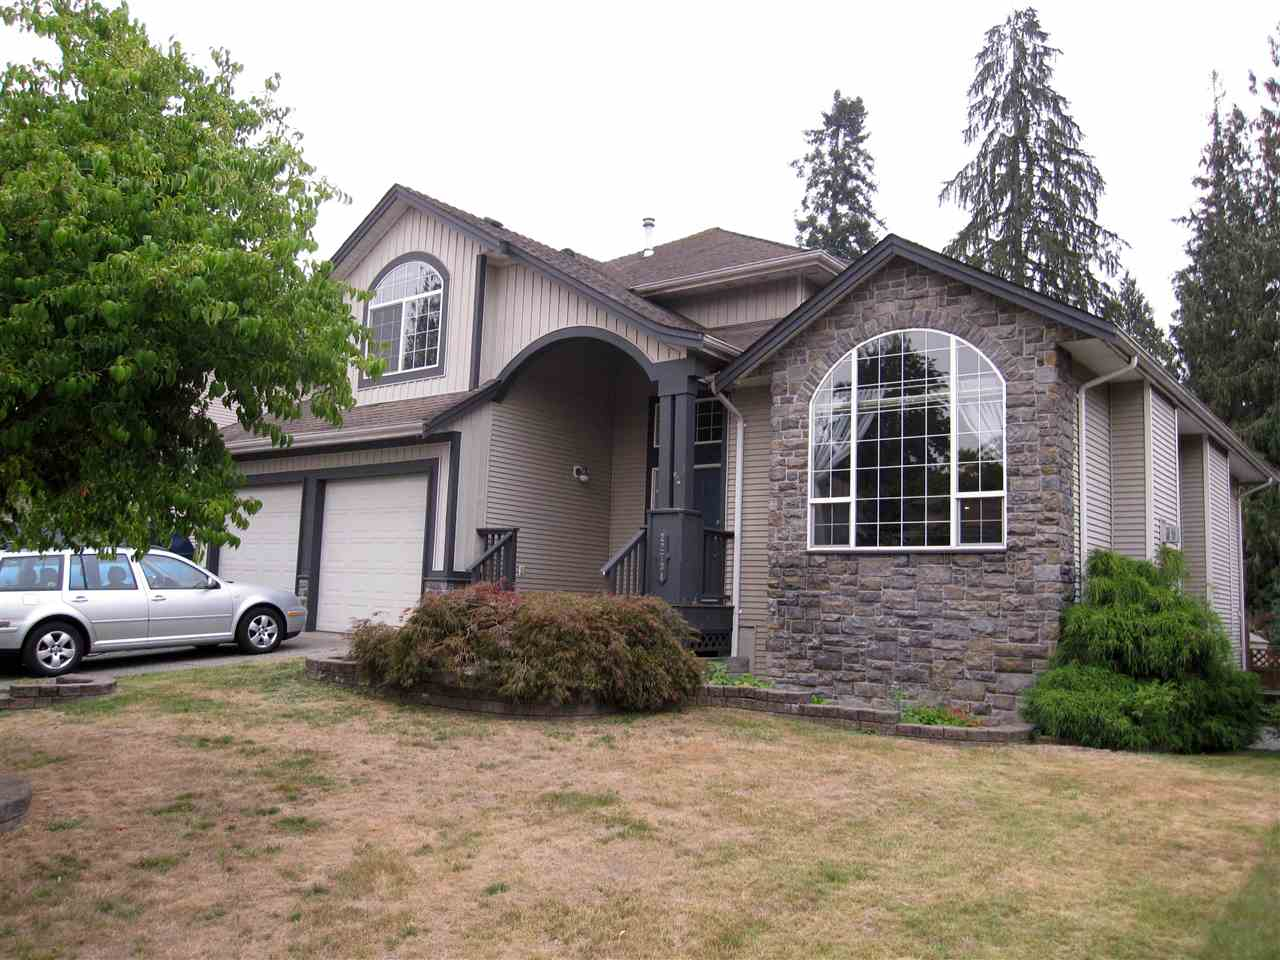 Main Photo: 22734 HOLYROOD Avenue in Maple Ridge: East Central House for sale : MLS® # R2203564